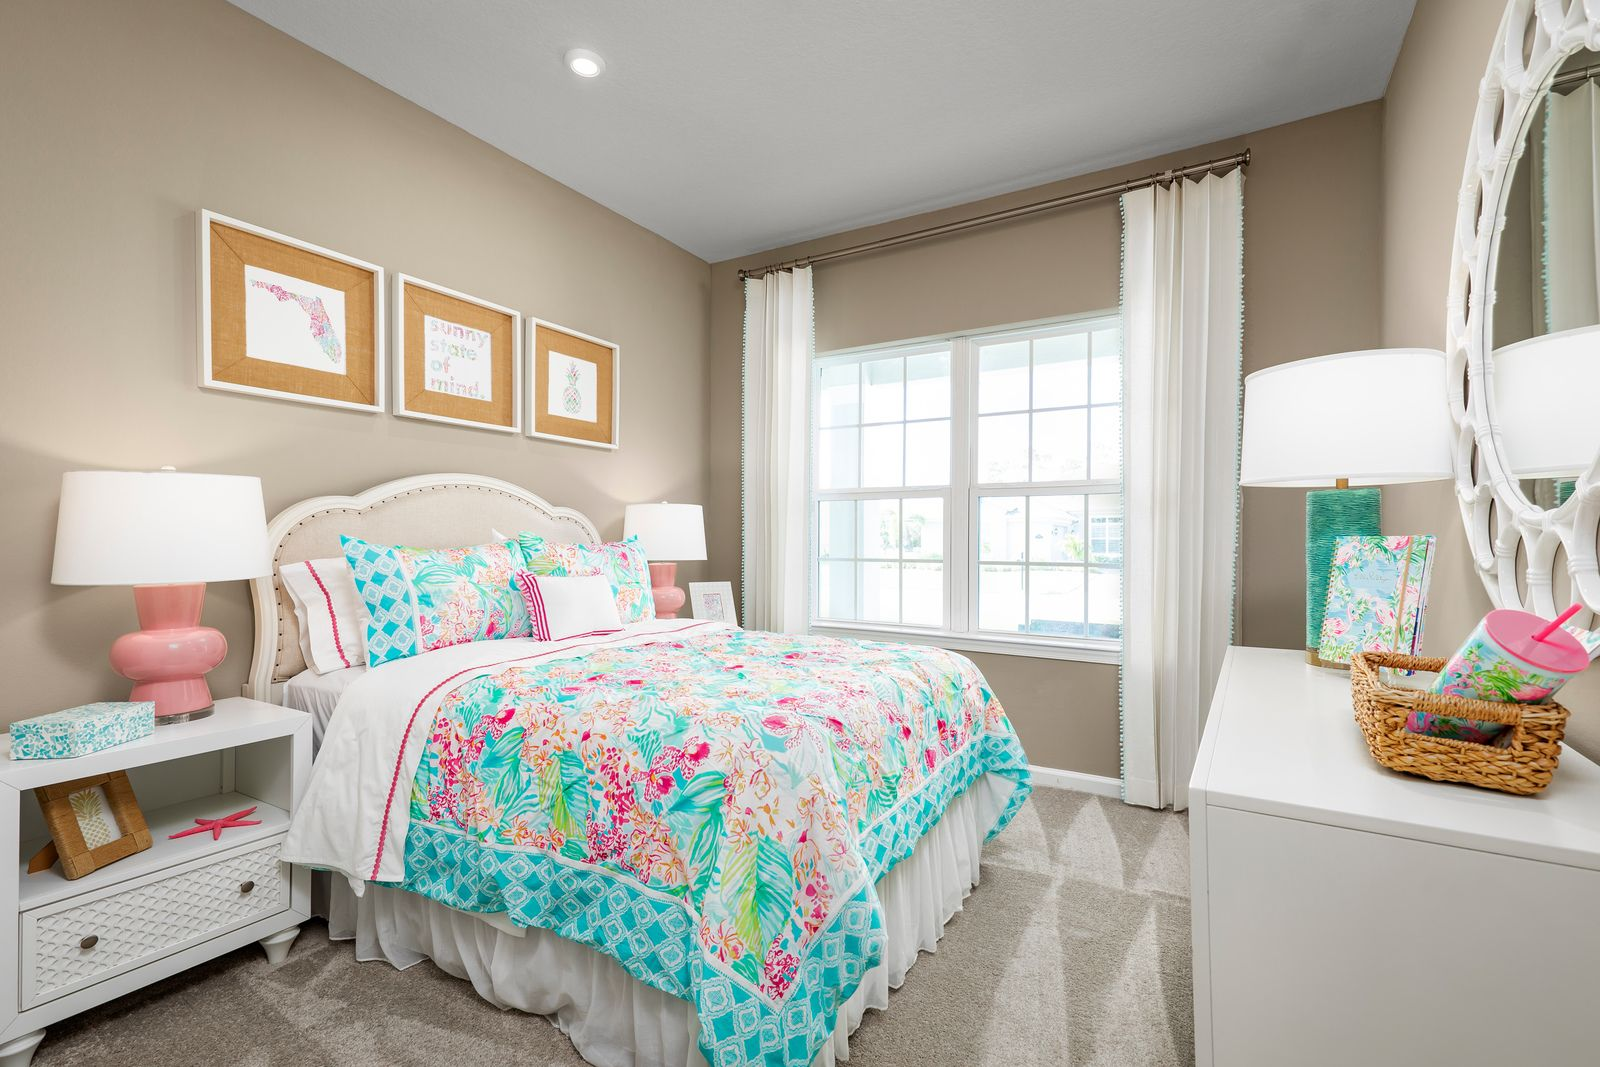 Bedroom featured in the Peterson Cove By Ryan Homes in Indian River County, FL